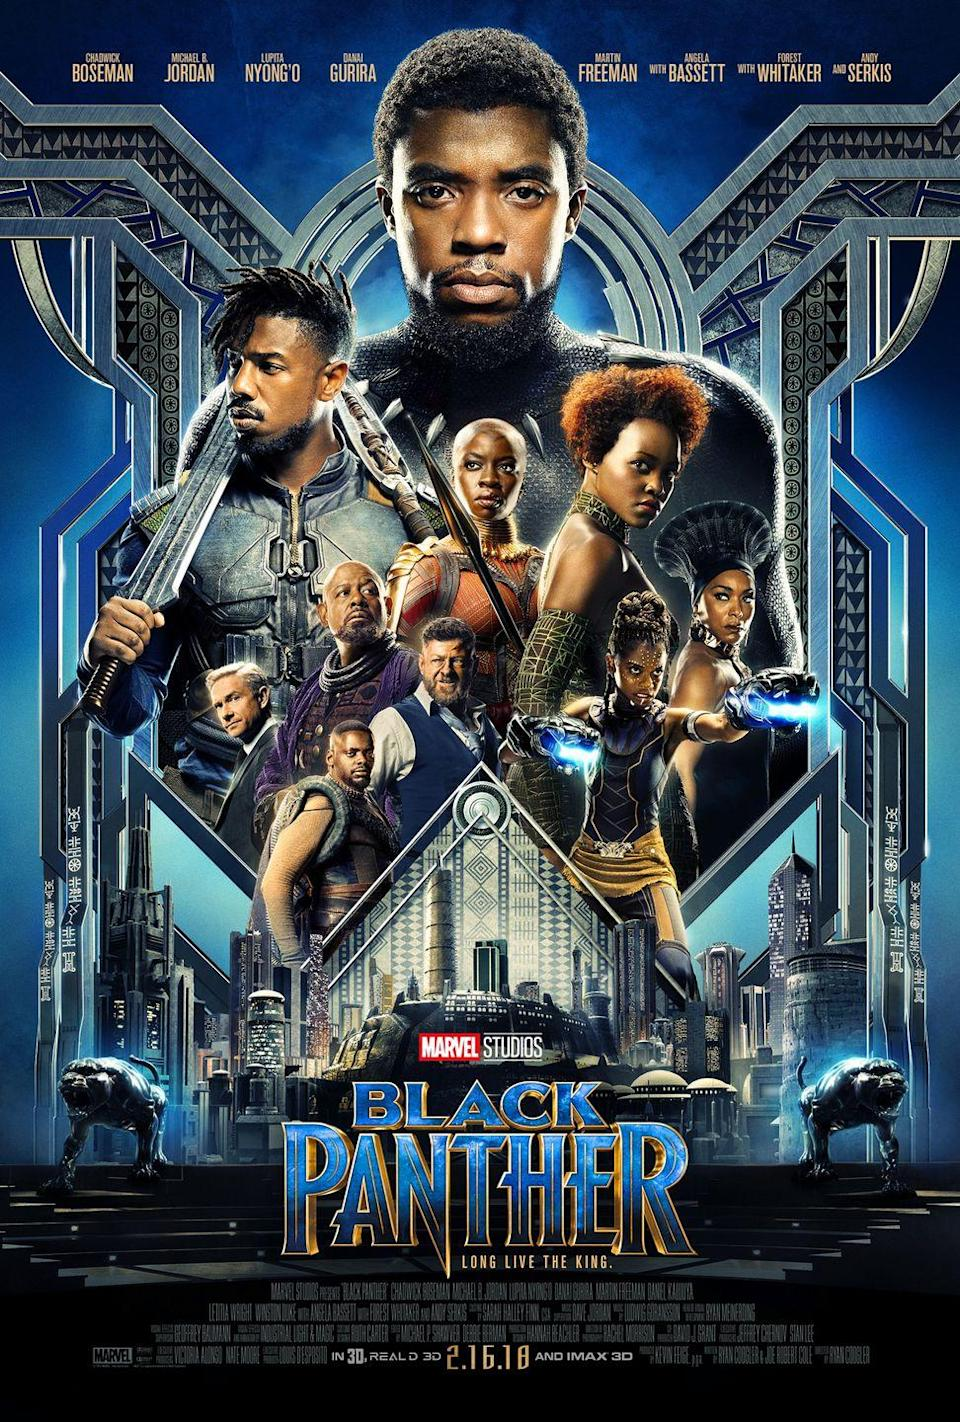 """<p>$14.99 <a class=""""link rapid-noclick-resp"""" href=""""https://www.amazon.com/Panther-Theatrical-Version-Chadwick-Boseman/dp/B079NKRK66?tag=syn-yahoo-20&ascsubtag=%5Bartid%7C2089.g.19687212%5Bsrc%7Cyahoo-us"""" rel=""""nofollow noopener"""" target=""""_blank"""" data-ylk=""""slk:BUY NOW"""">BUY NOW </a></p><p>Wakanda forever, indeed! This entry into the ever-sprawling Marvel Cinematic Universe — and the first with a predominantly black cast — <a href=""""https://www.theatlantic.com/entertainment/archive/2018/02/the-game-changing-success-of-black-panther/553763/"""" rel=""""nofollow noopener"""" target=""""_blank"""" data-ylk=""""slk:broke numerous records"""" class=""""link rapid-noclick-resp"""">broke numerous records </a>and became an <a href=""""http://time.com/black-panther/"""" rel=""""nofollow noopener"""" target=""""_blank"""" data-ylk=""""slk:instant cultural touchstone"""" class=""""link rapid-noclick-resp"""">instant cultural touchstone</a>. </p>"""